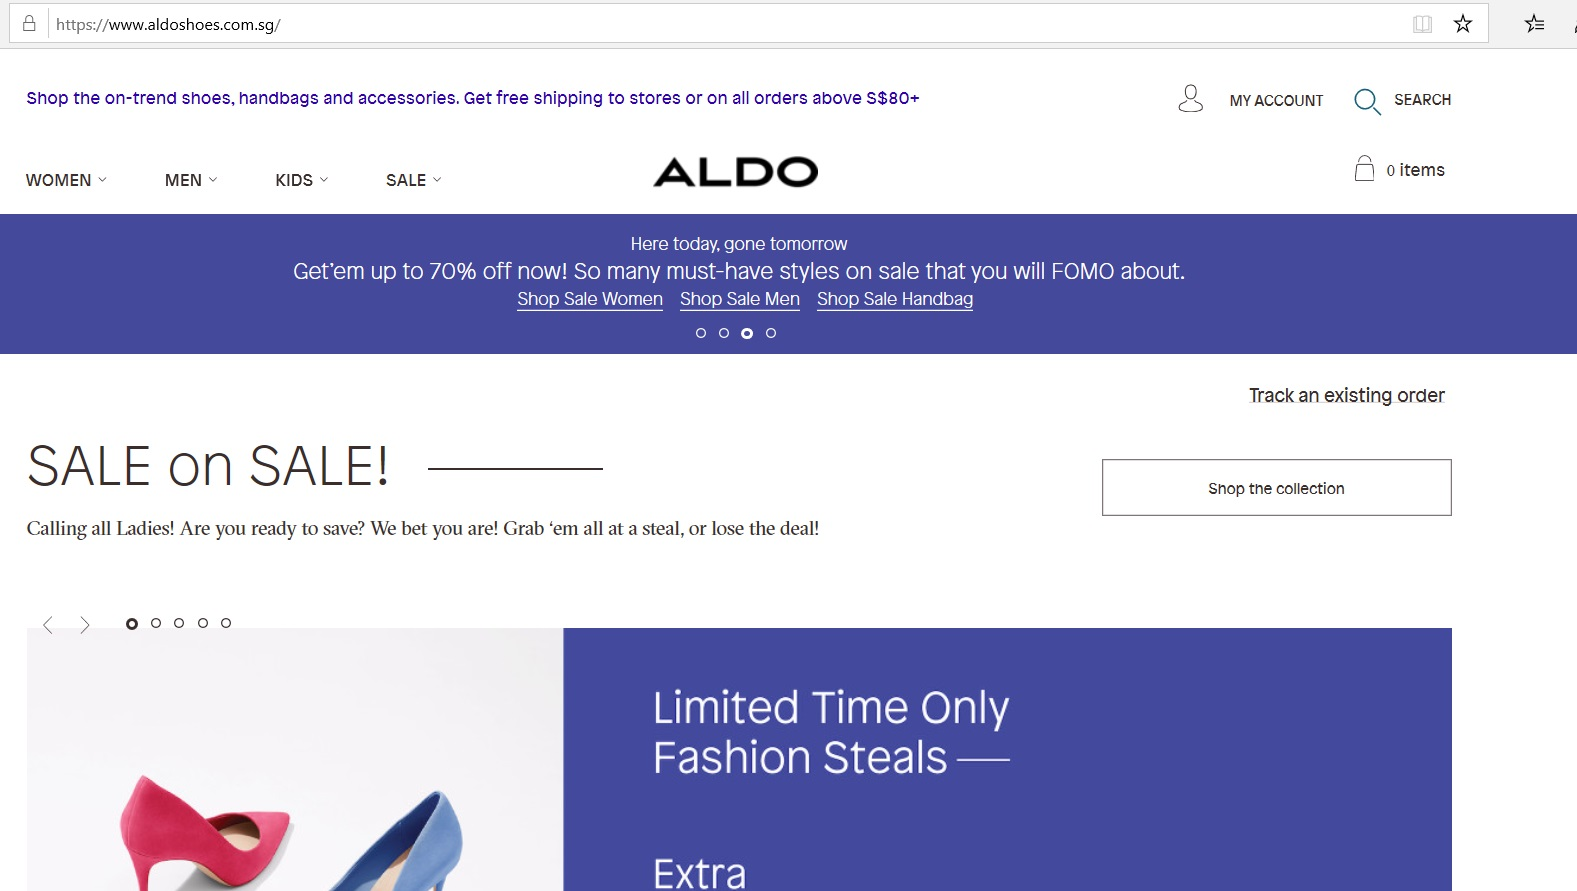 Aldo page for the latest sales.